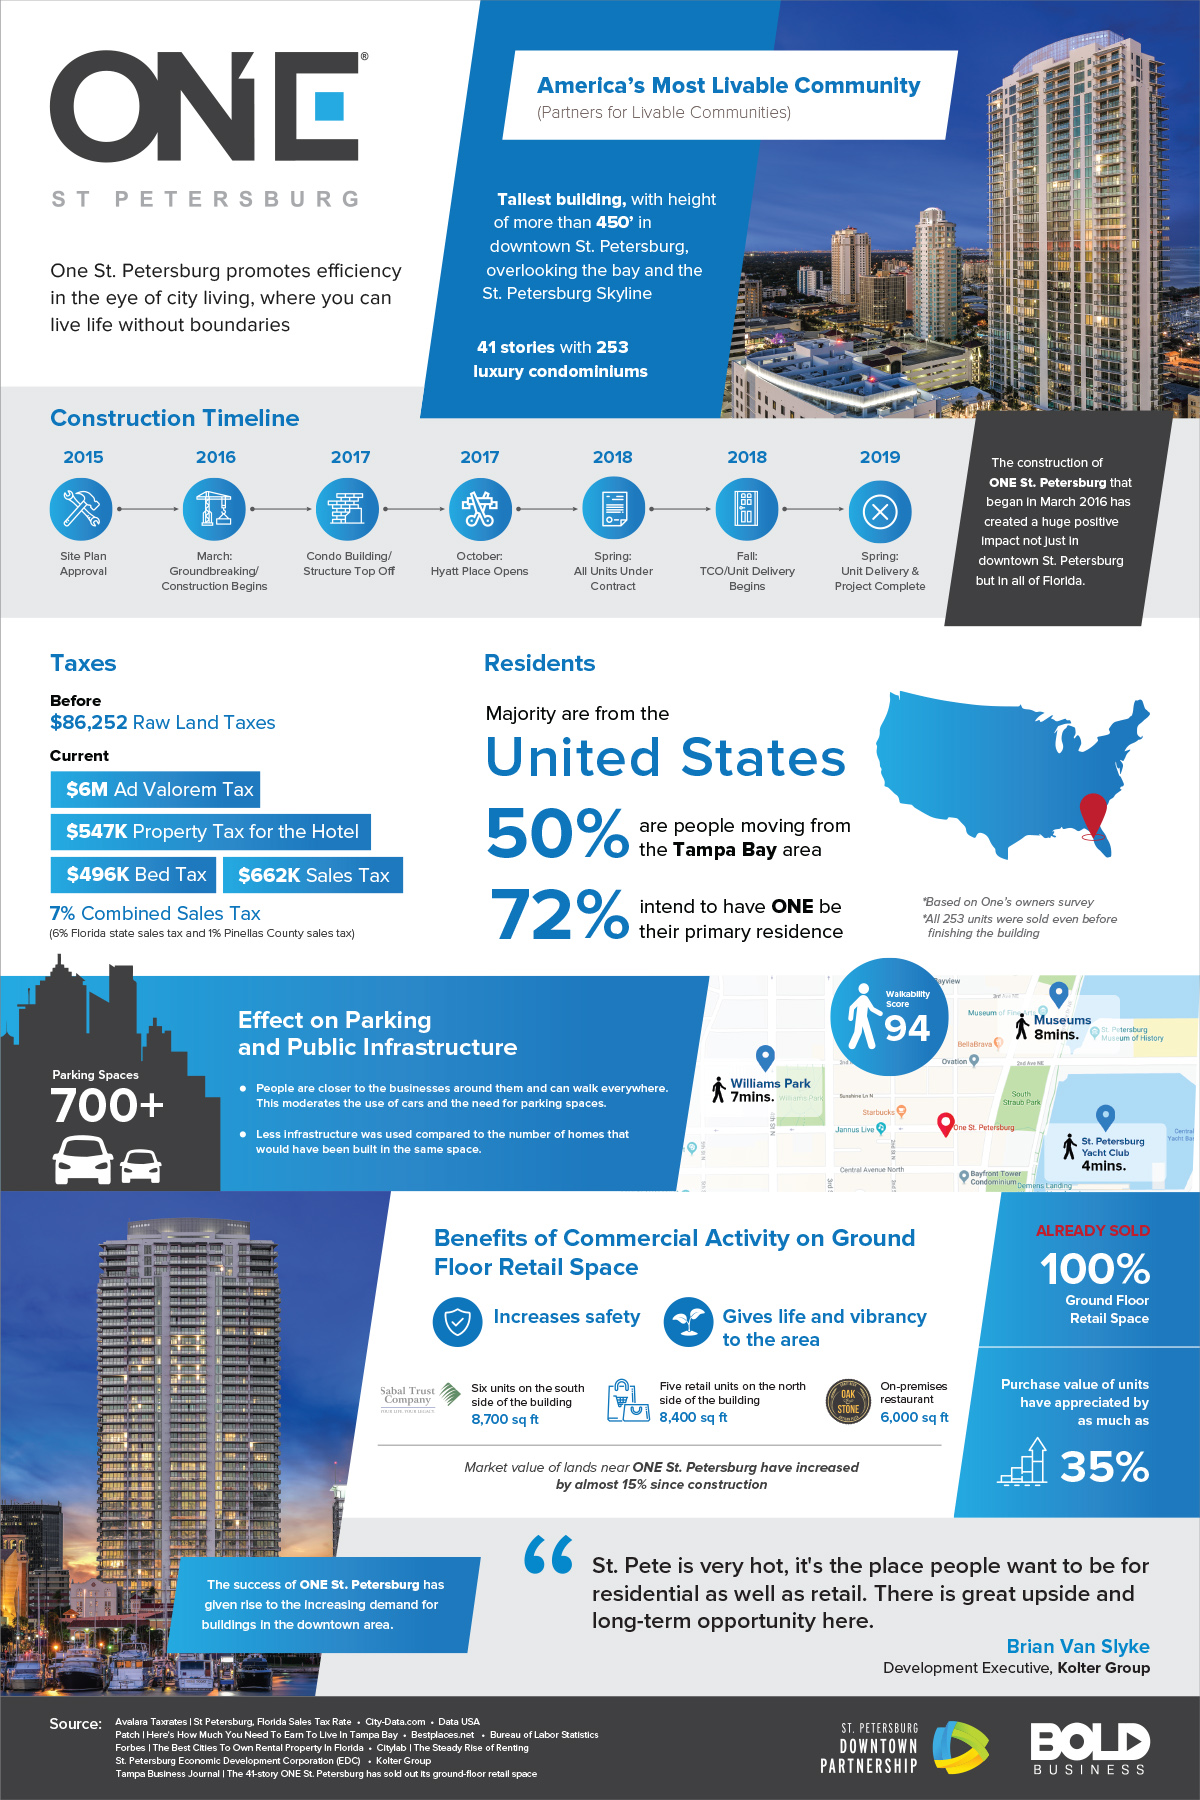 infographic about one st petersburg building, the tallest building that aims to be america's most livable community.